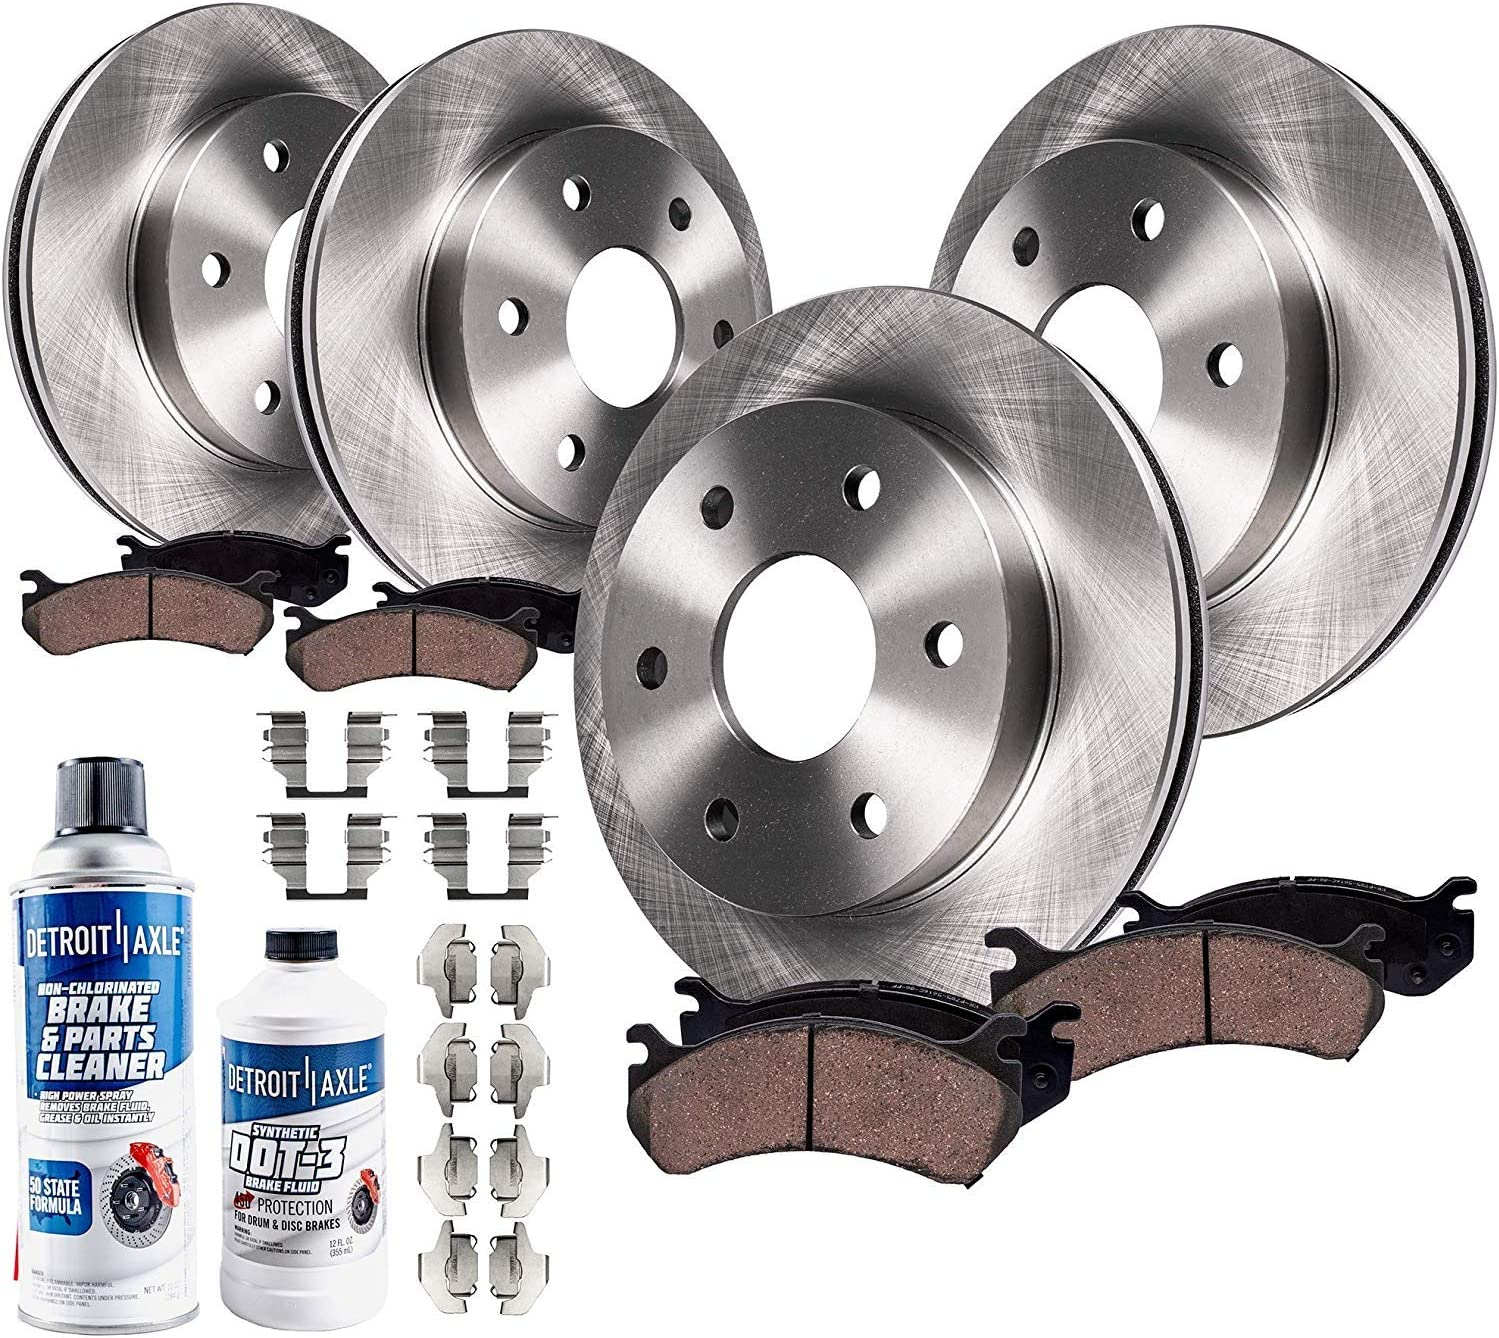 See Fiment Rear Disc Brake Rotors w//Ceramic Pads Hardware /& Brake Cleaner /& Fluid for 14-19 Escalade ESV Suburban Silverado Sierra 1500 Yukon 2 Tahoe Detroit Axle Pair